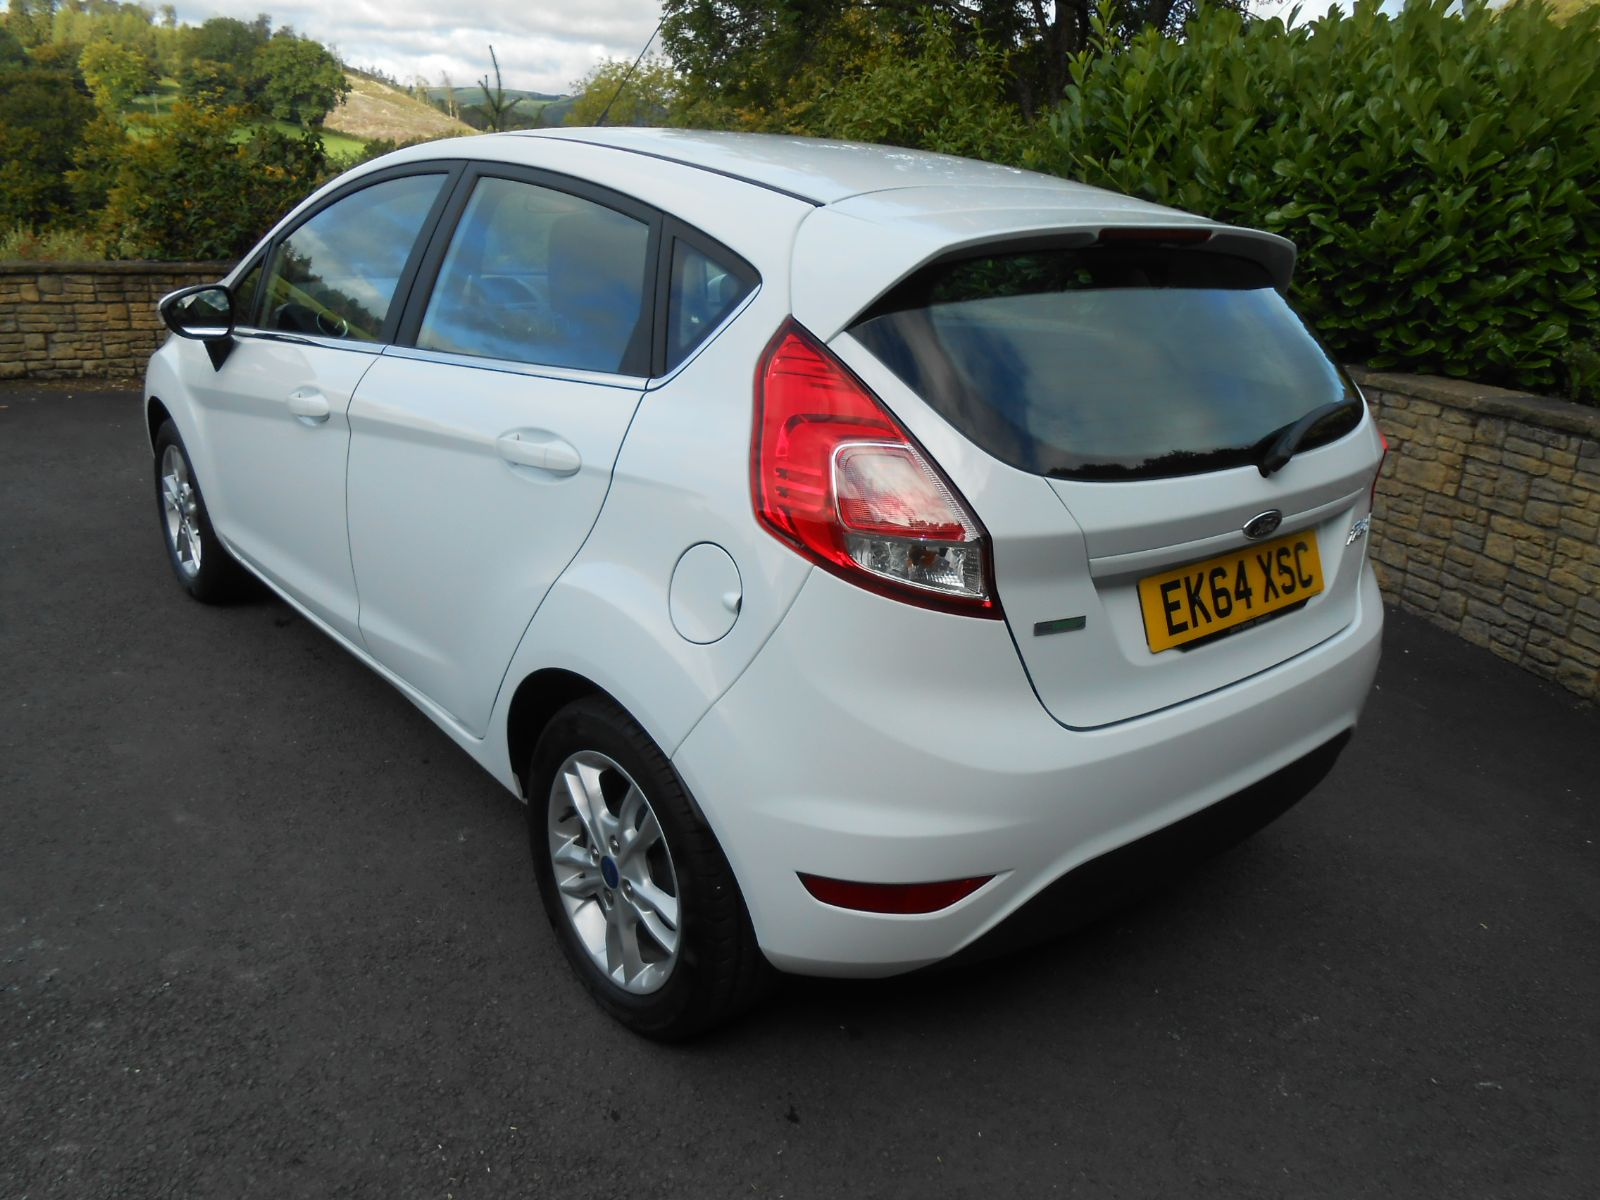 ford fiesta 1 0 ecoboost 100 zetec 5 door car for sale llanidloes powys mid wales kevin jones. Black Bedroom Furniture Sets. Home Design Ideas